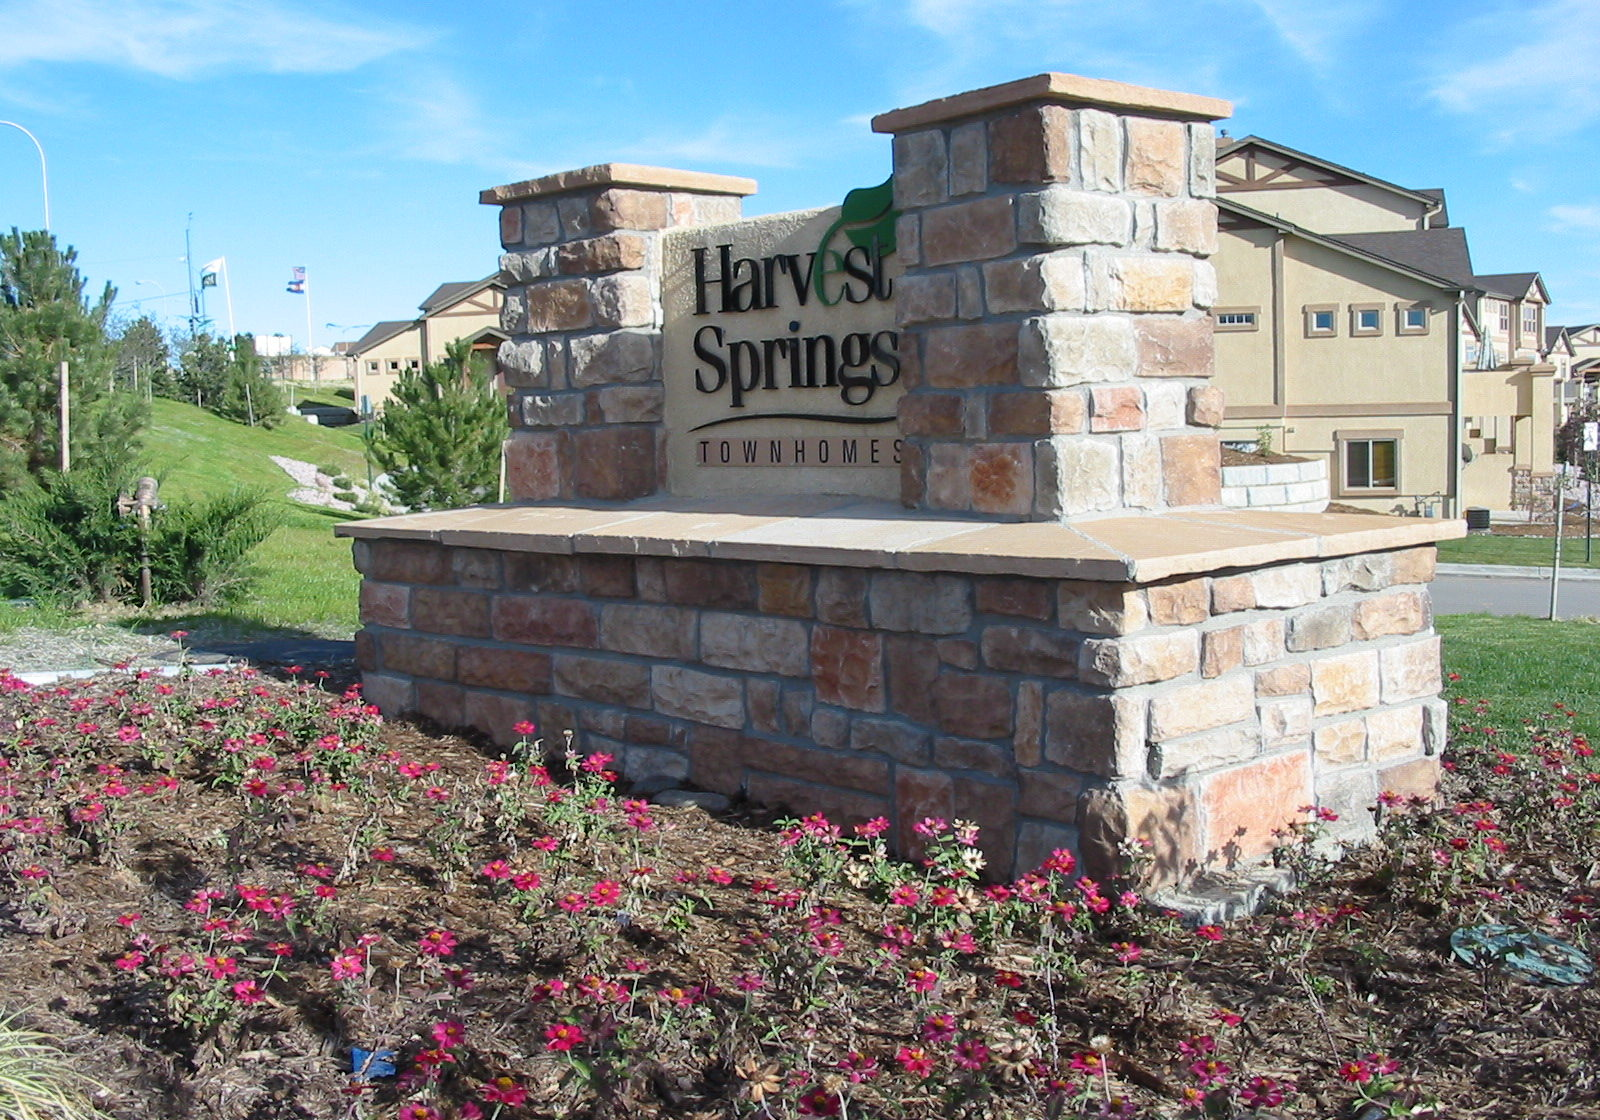 Harvest-Springs_Front-Sign-1